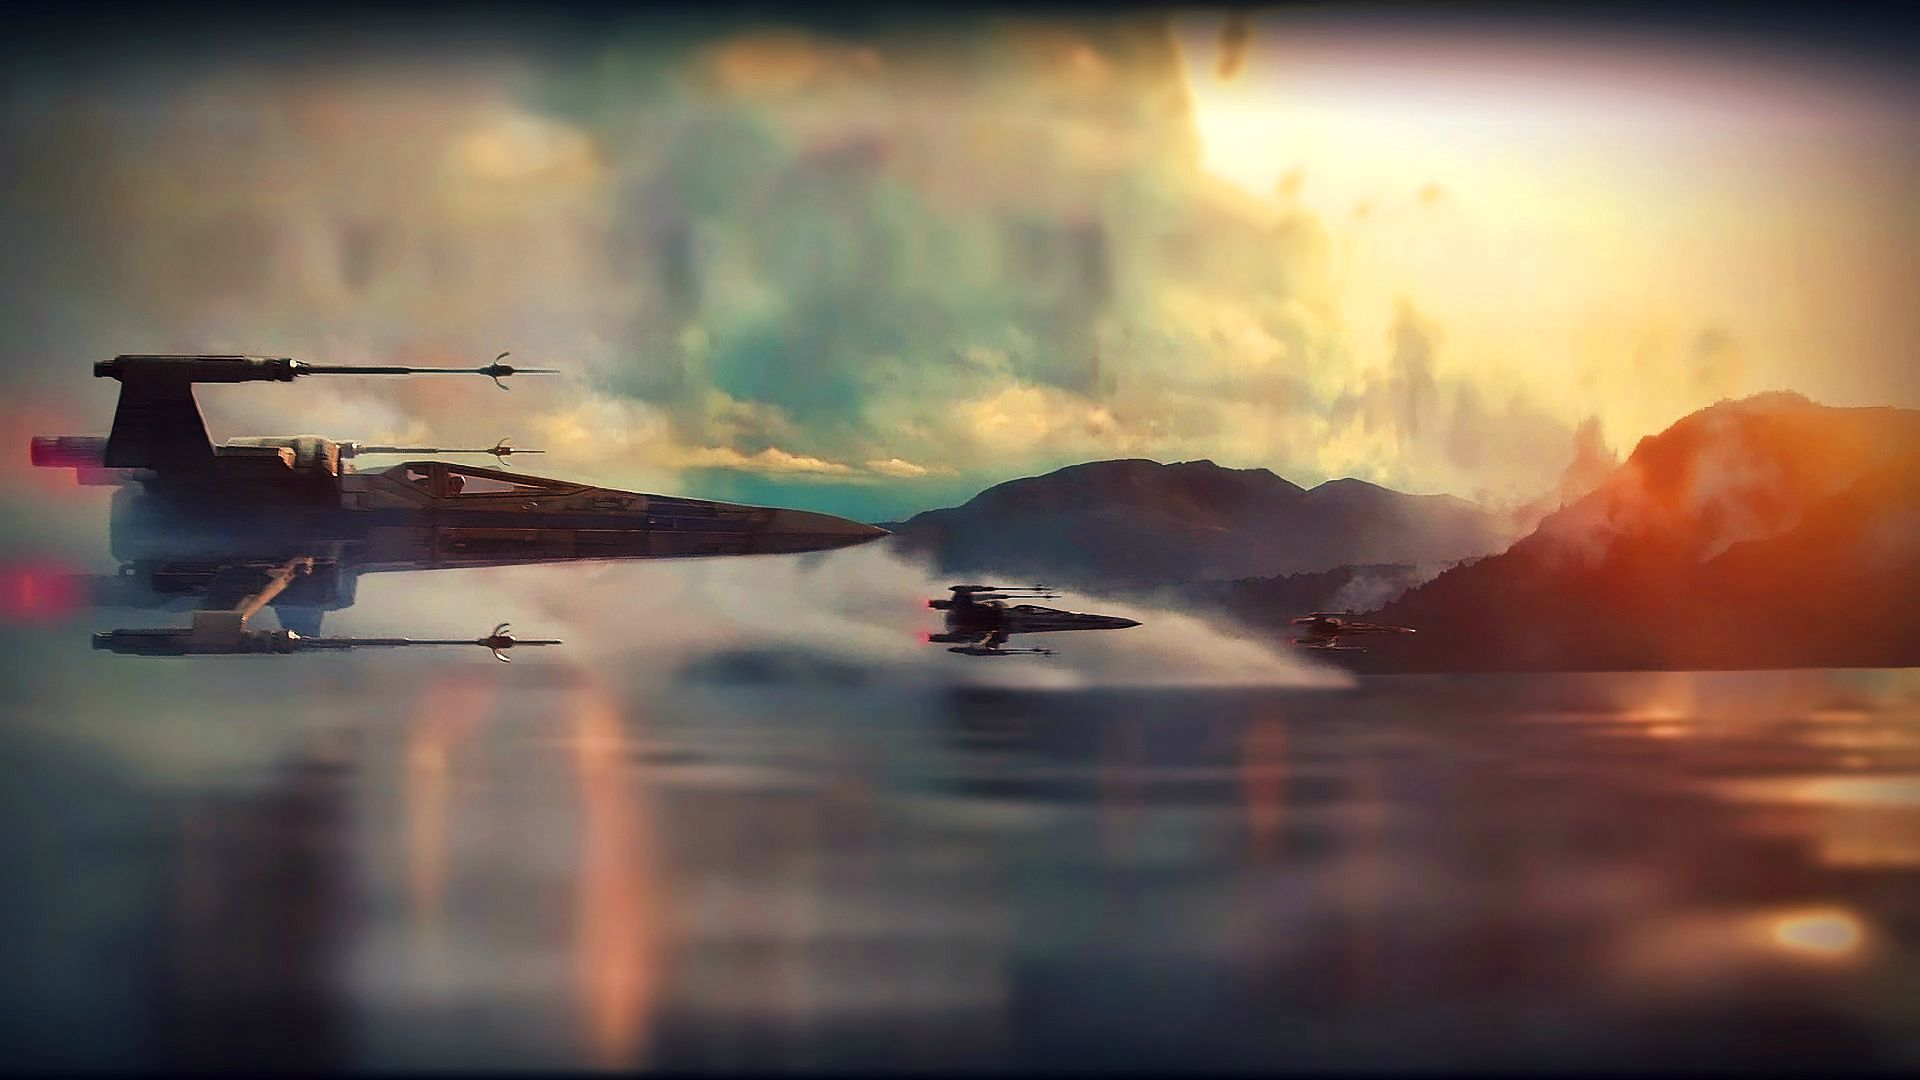 flying sky jet movie star wars the force awaken wallpaper hd | han